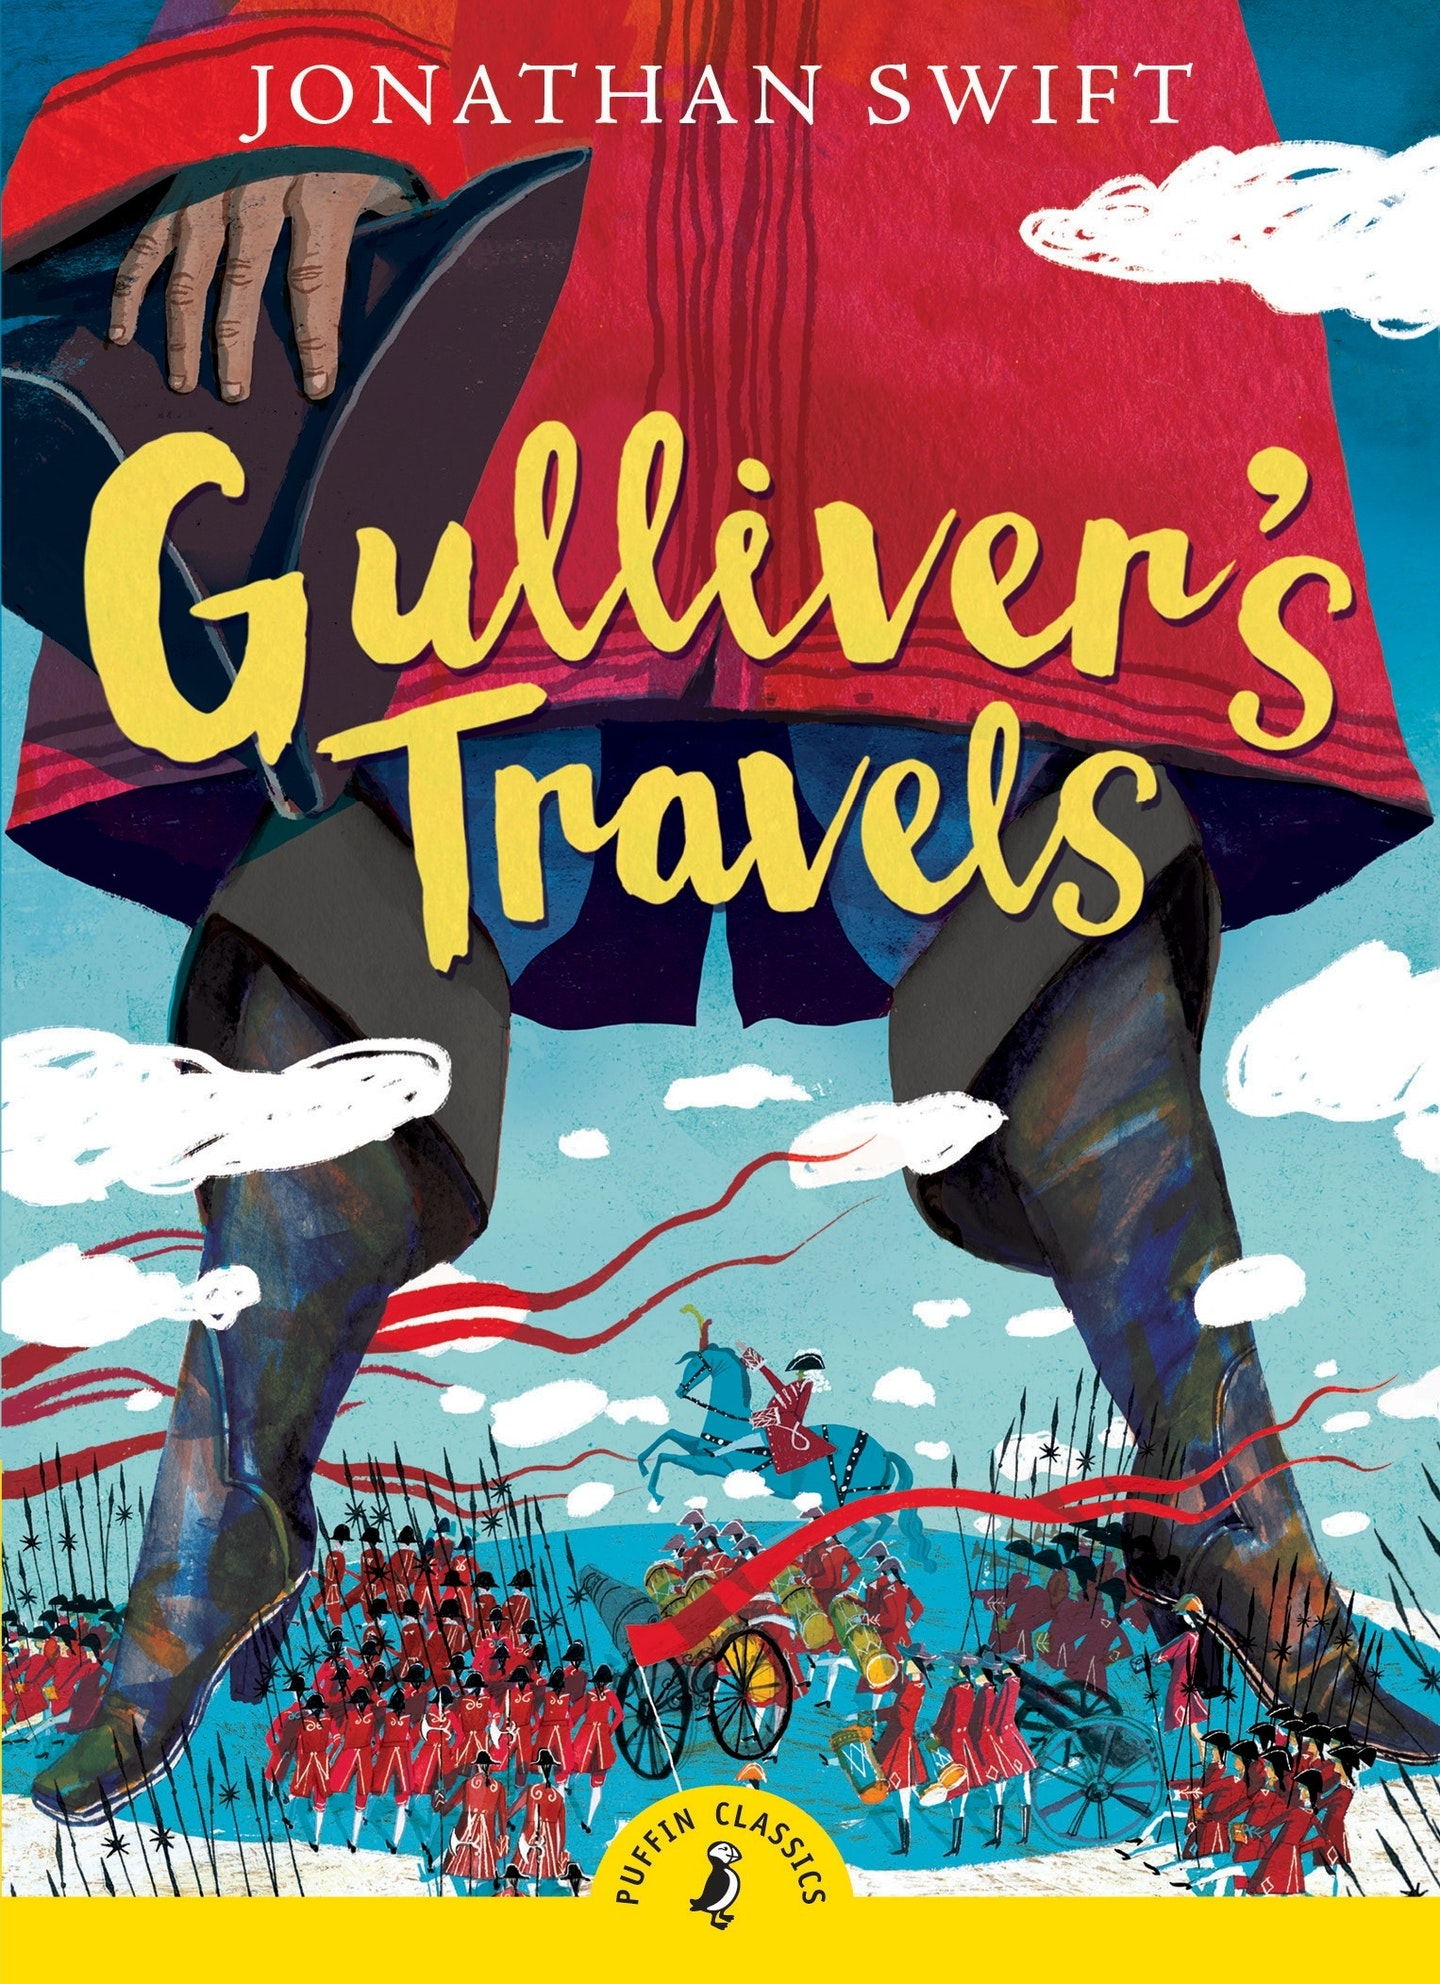 an examination of the novel gullivers travels by jonathan swift For historians of science, jonathan swift's book gulliver's travels is well known both as a work of what we might call proto-science fiction and as a satire on the.